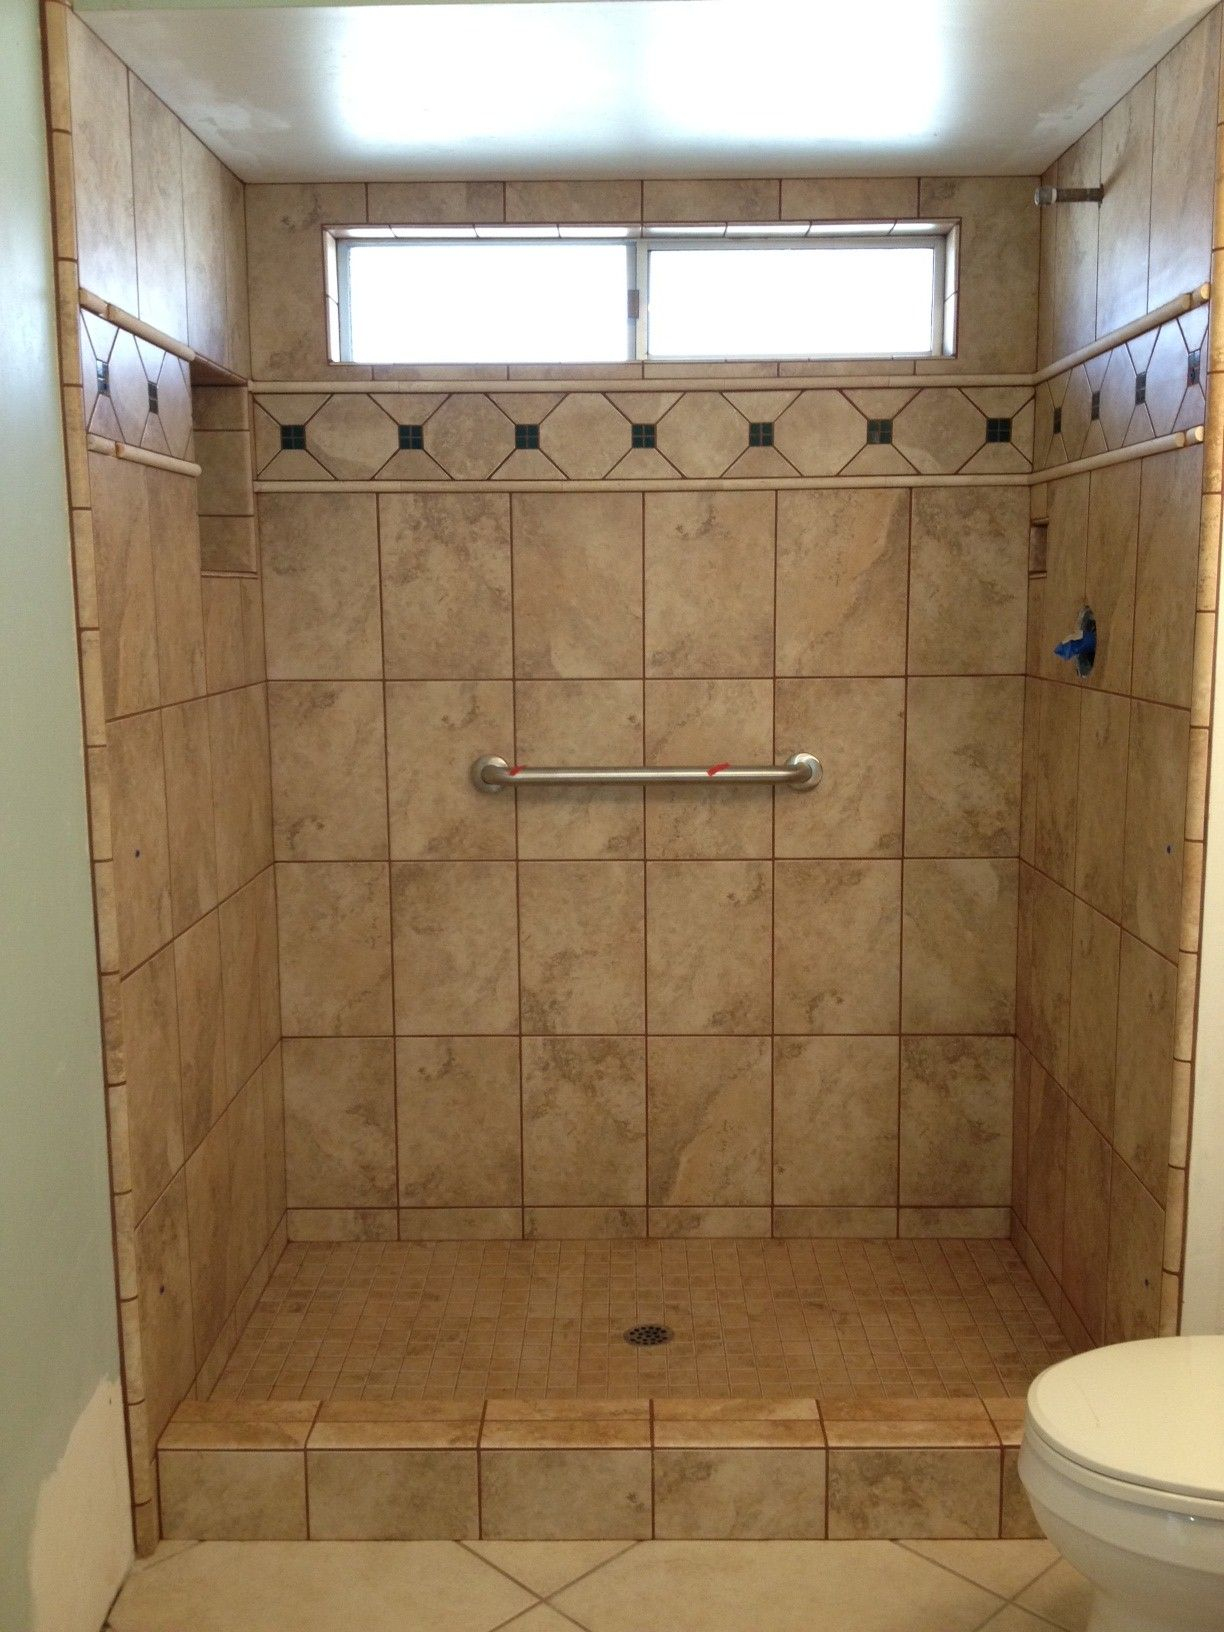 photos of tiled shower stalls | Photos Gallery - Custom Tile Work ...